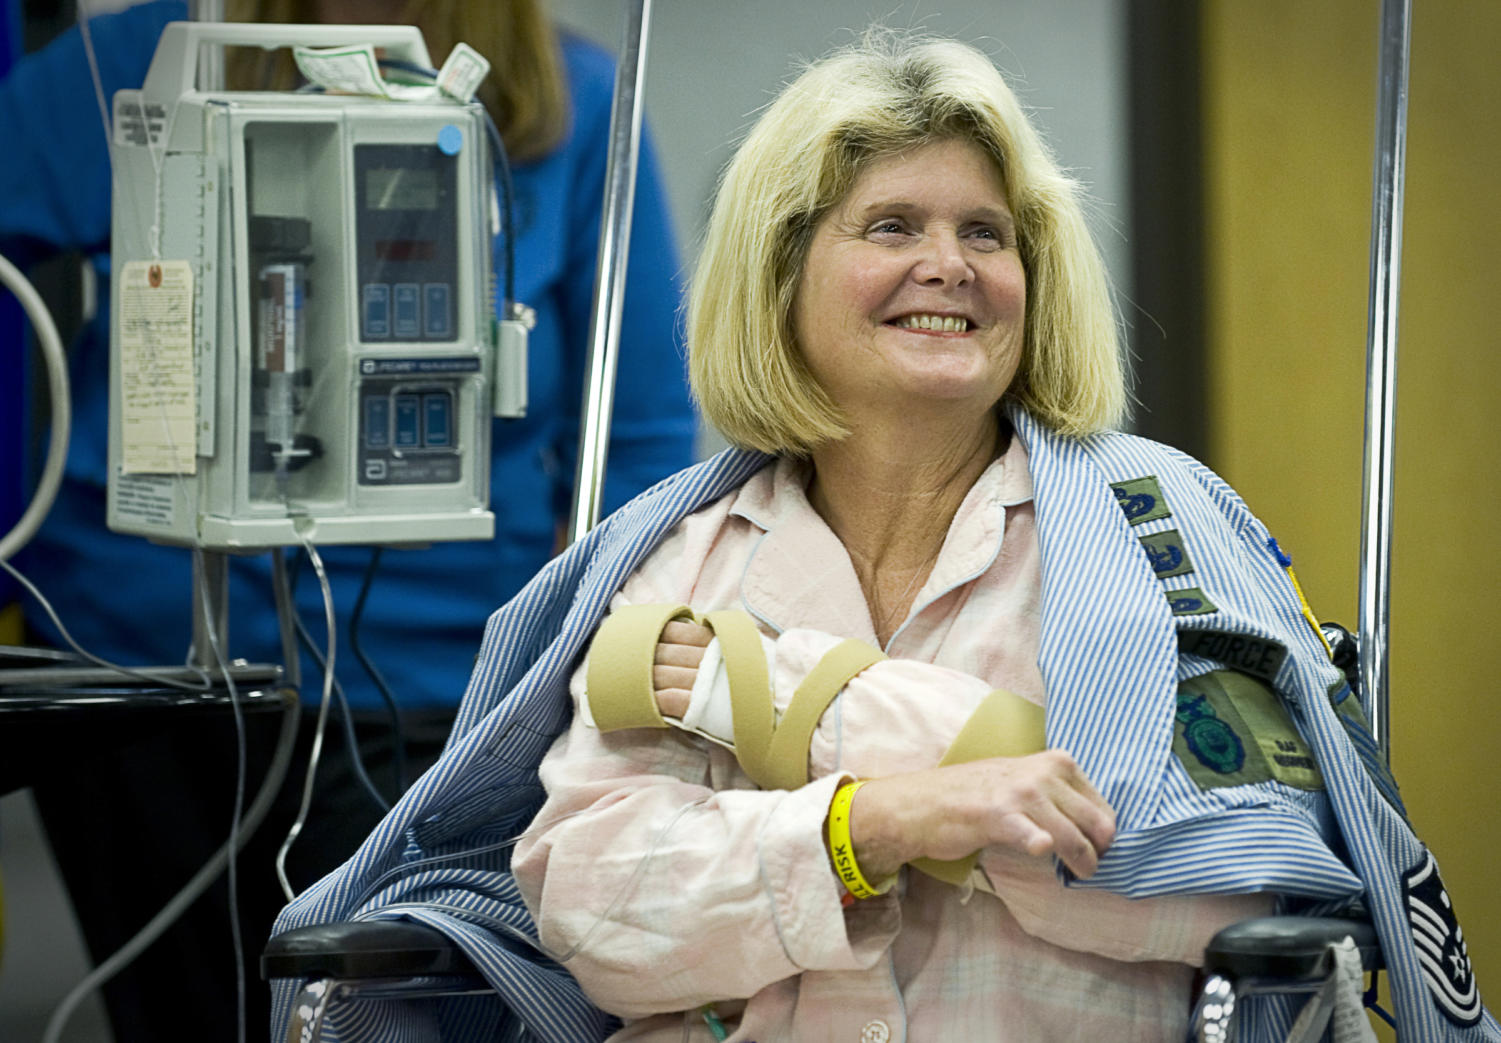 Among many organ recipients, one of the strongest is retired Master Sgt. Janet McWilliams, who became the tenth person in the United States to have undergone a hand transplant in 2010. Labeled for reuse.